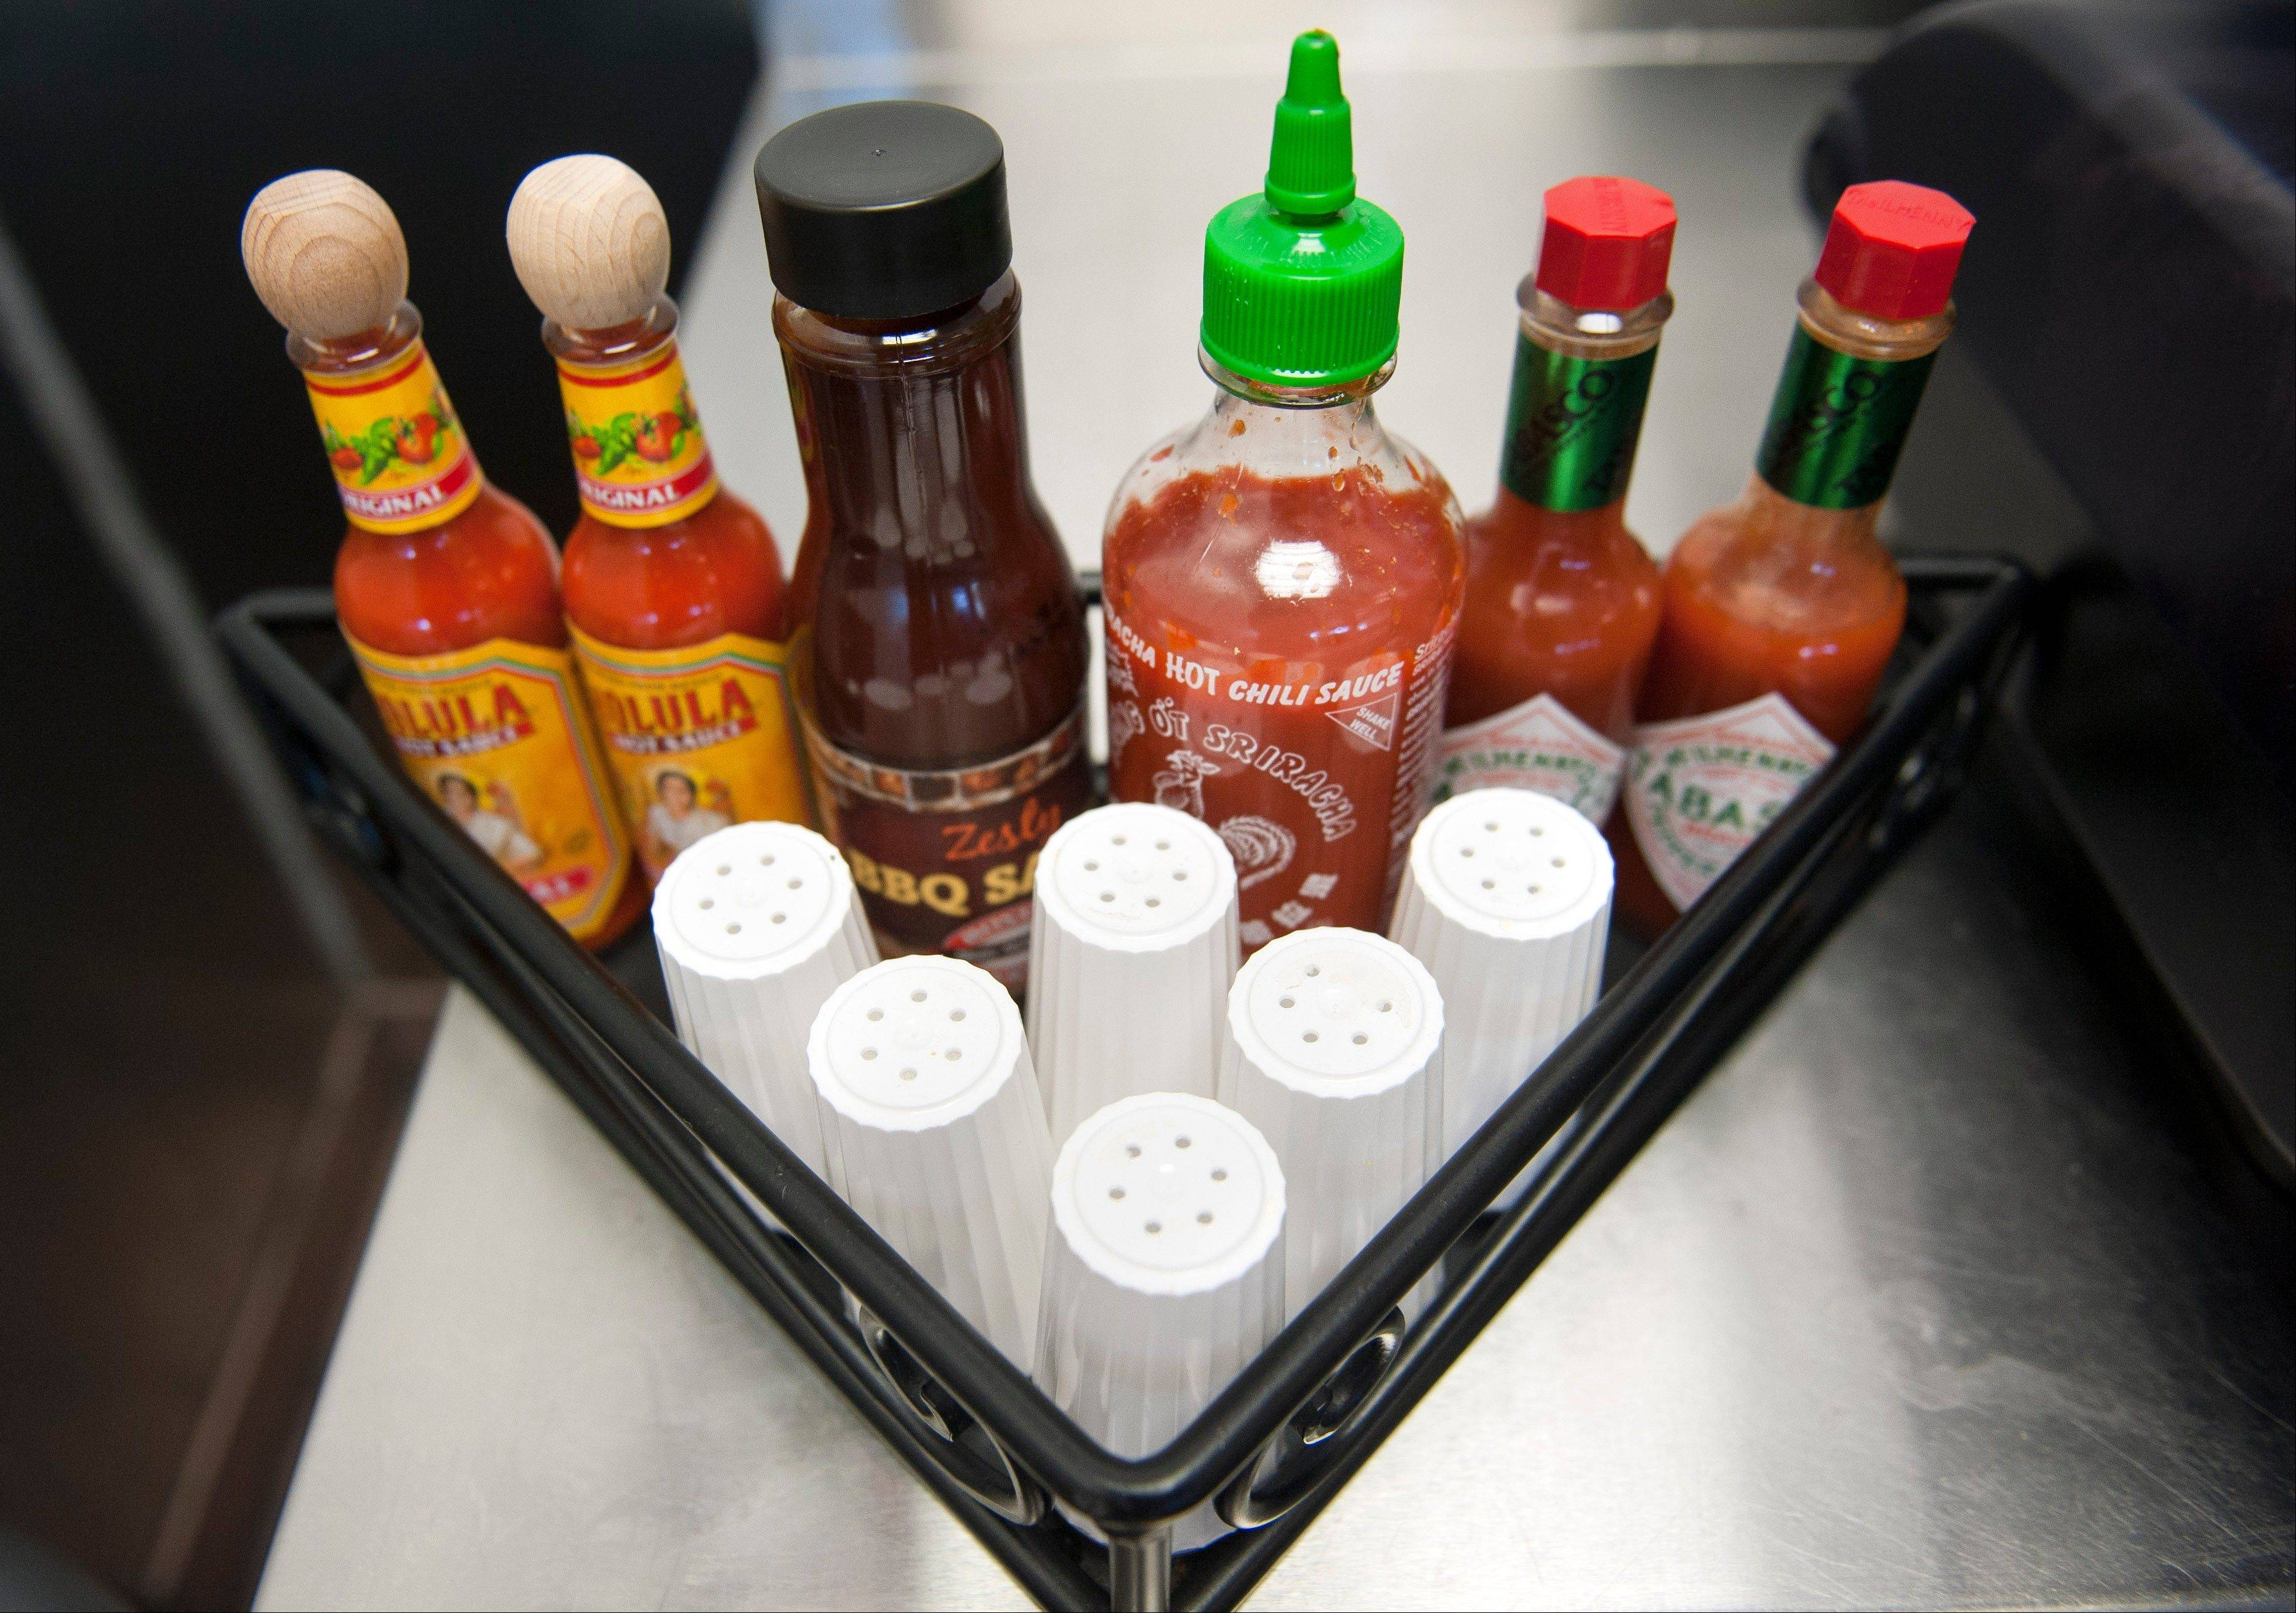 Salt shakers and other condiments sit on a beverage dispenser table at a Boston Market restaurant in Alexandria, Va. Boston Market has removed the salt shakers from the tables in their restaurants nationwide placing them with other condiments on the beverage dispenser table.